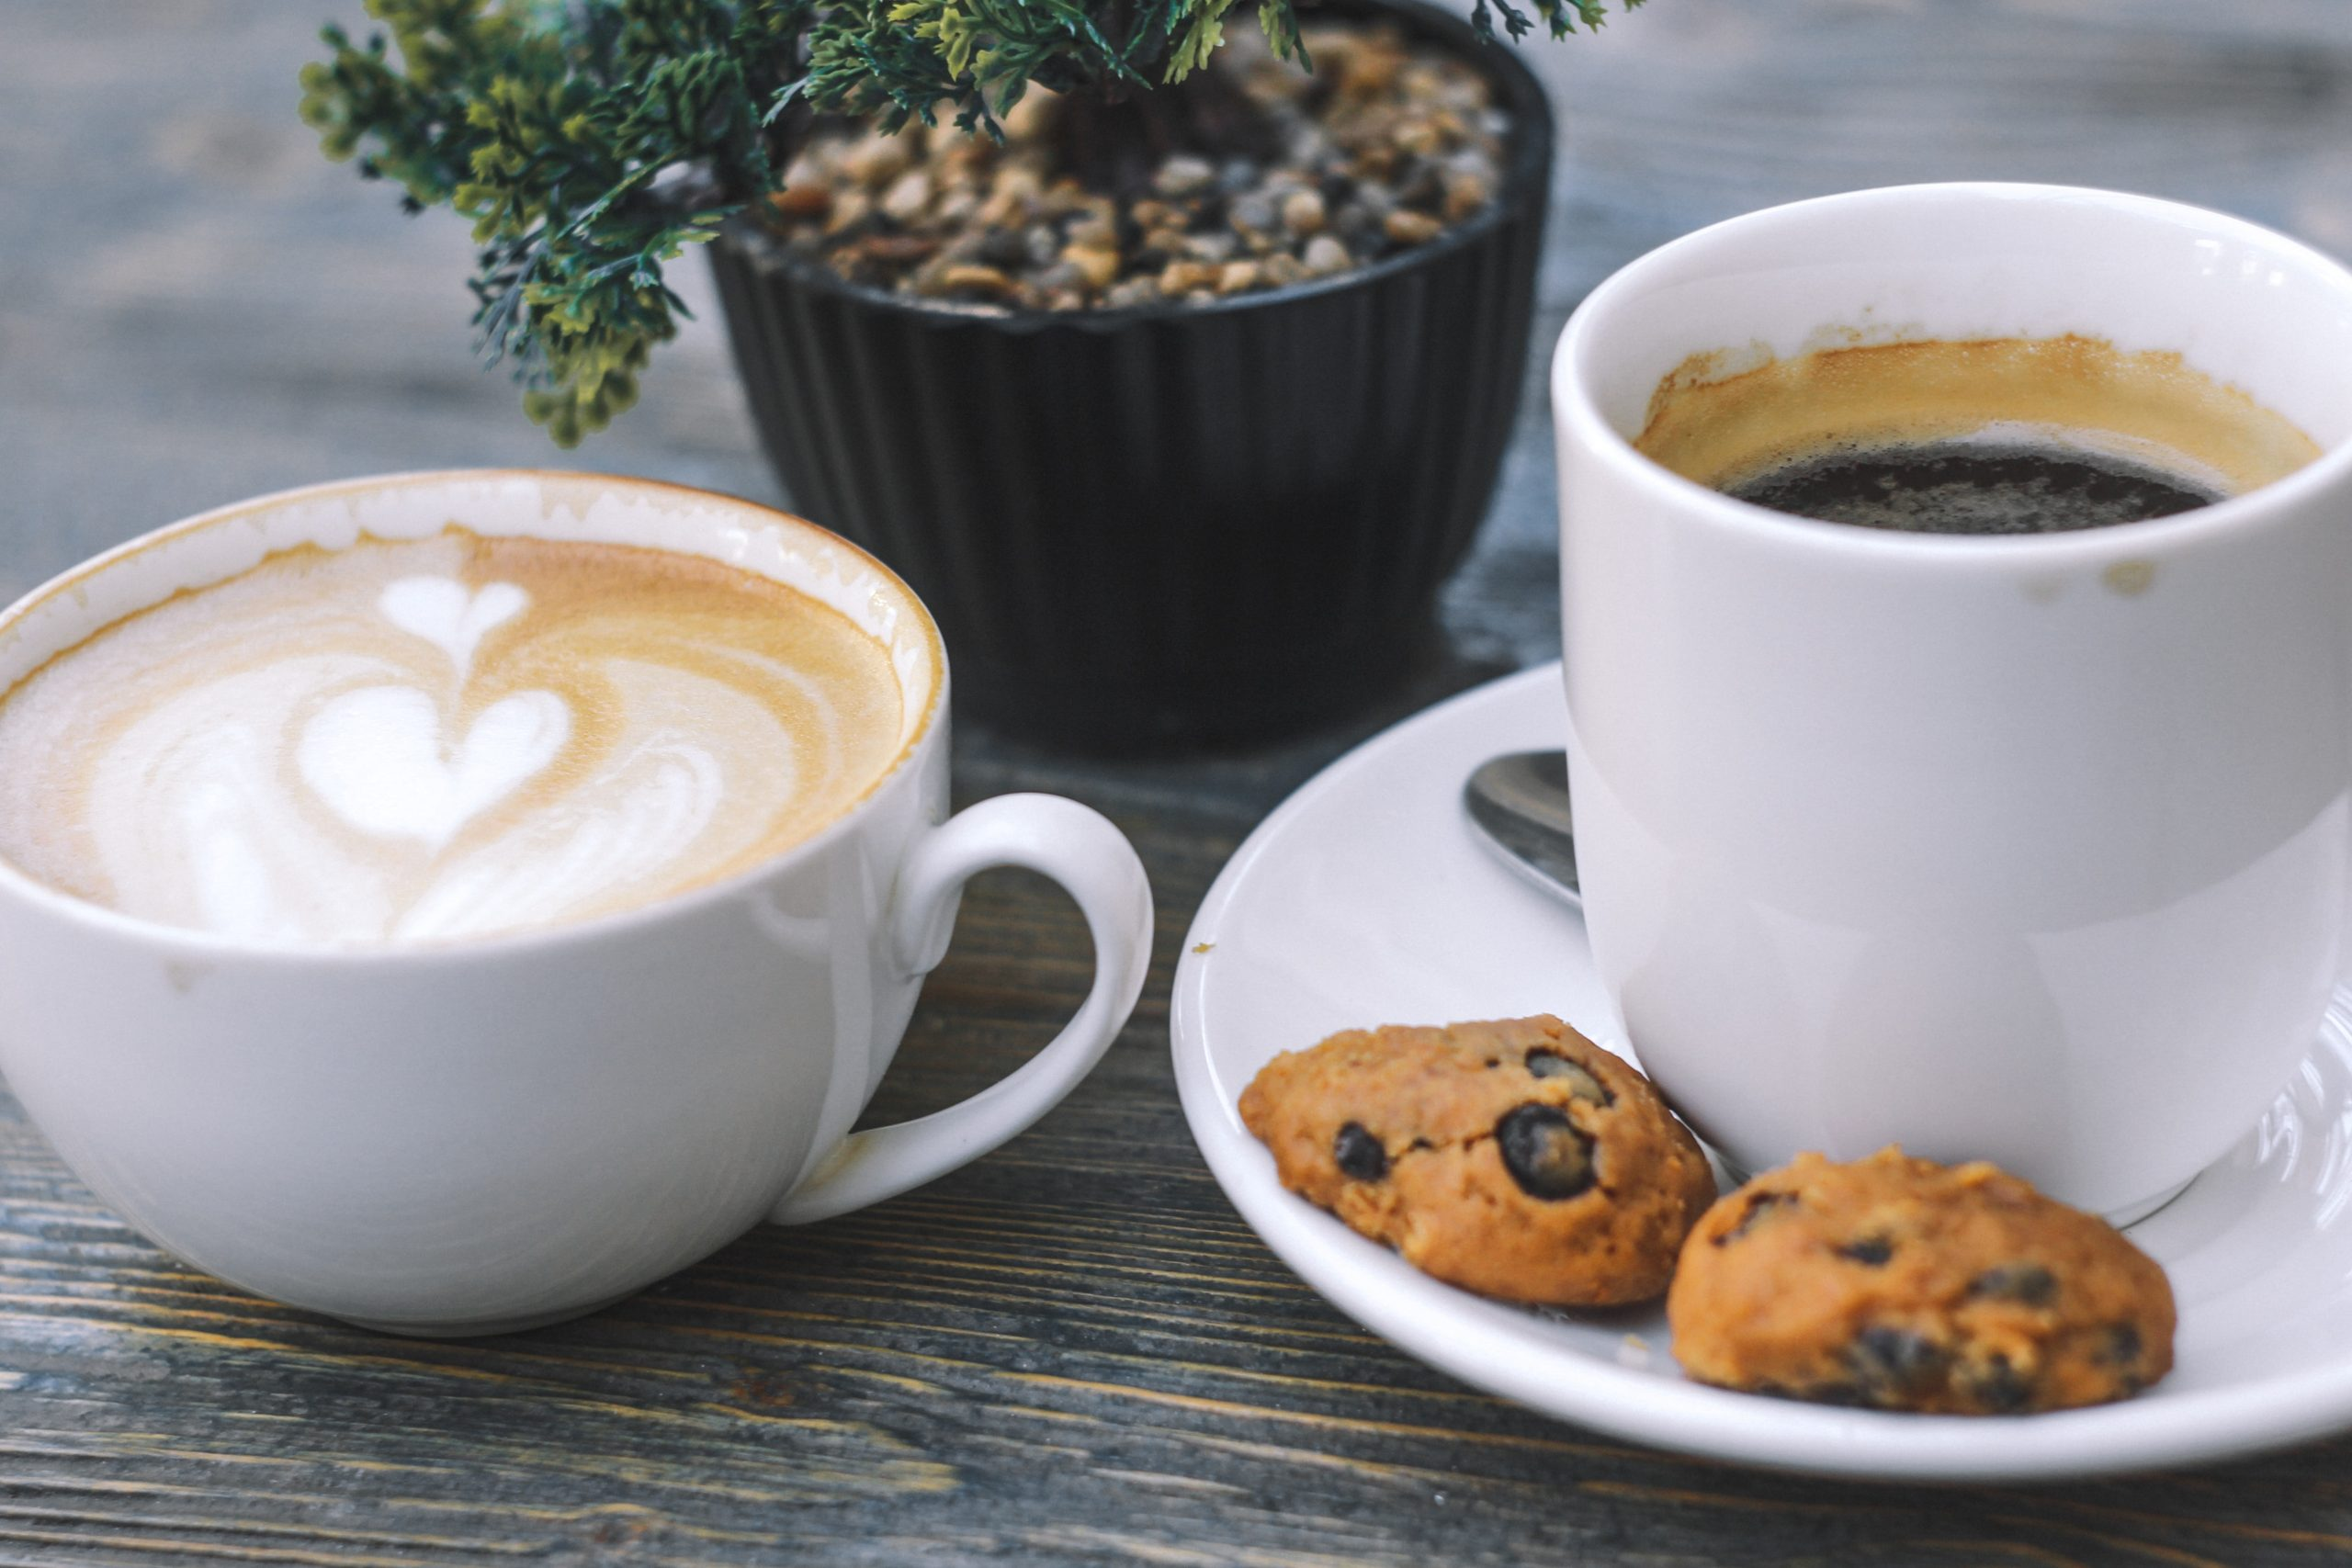 The Gift of Simple Pleasures, Cup of black coffee with cookies on saucer